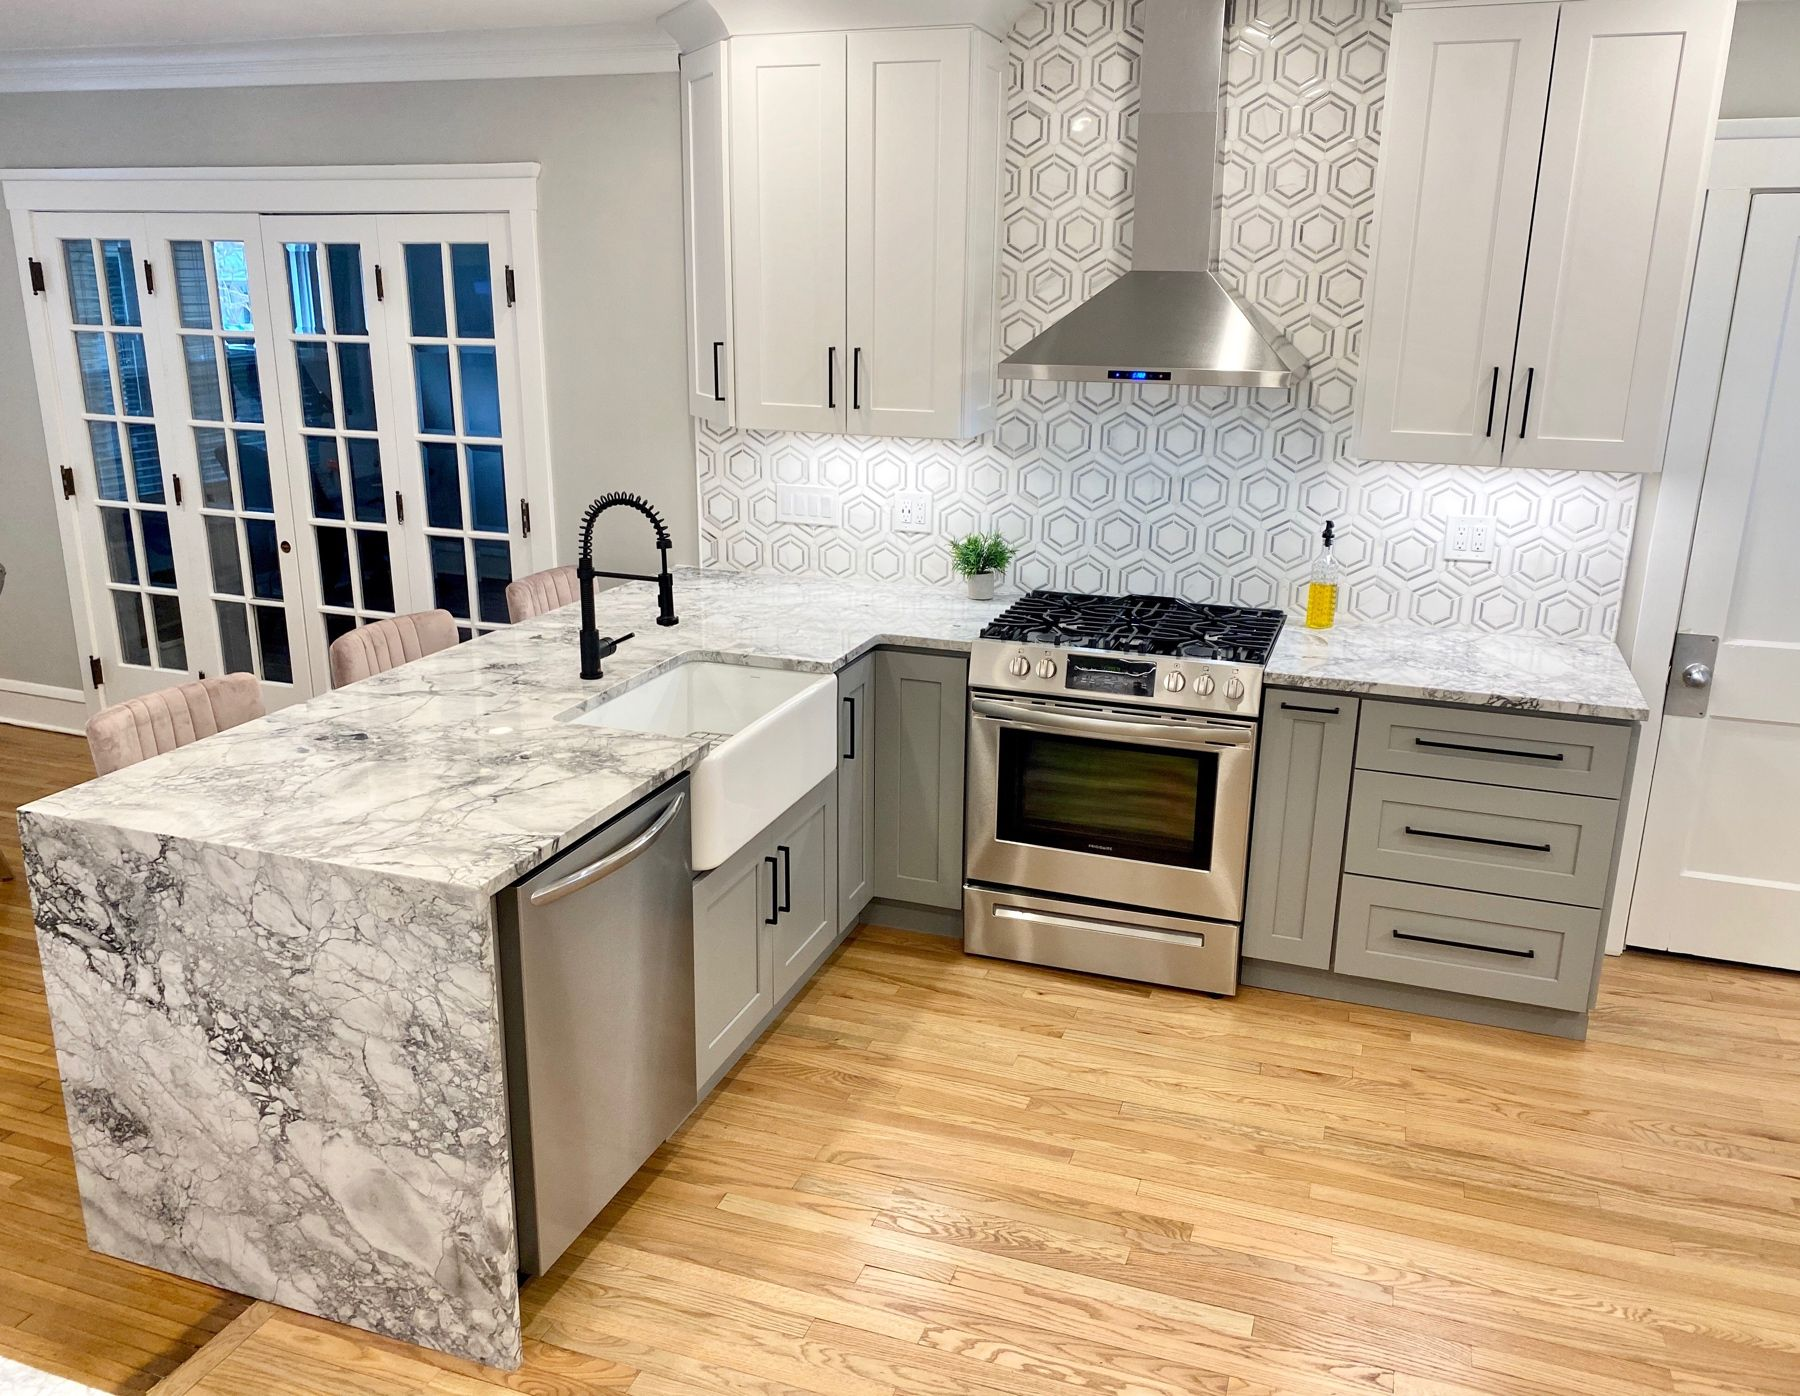 Cleveland Cabinets Lakewood Kitchen Remodel In 2020 Kitchen Remodel Kitchen Design Small Kitchen Design Showrooms